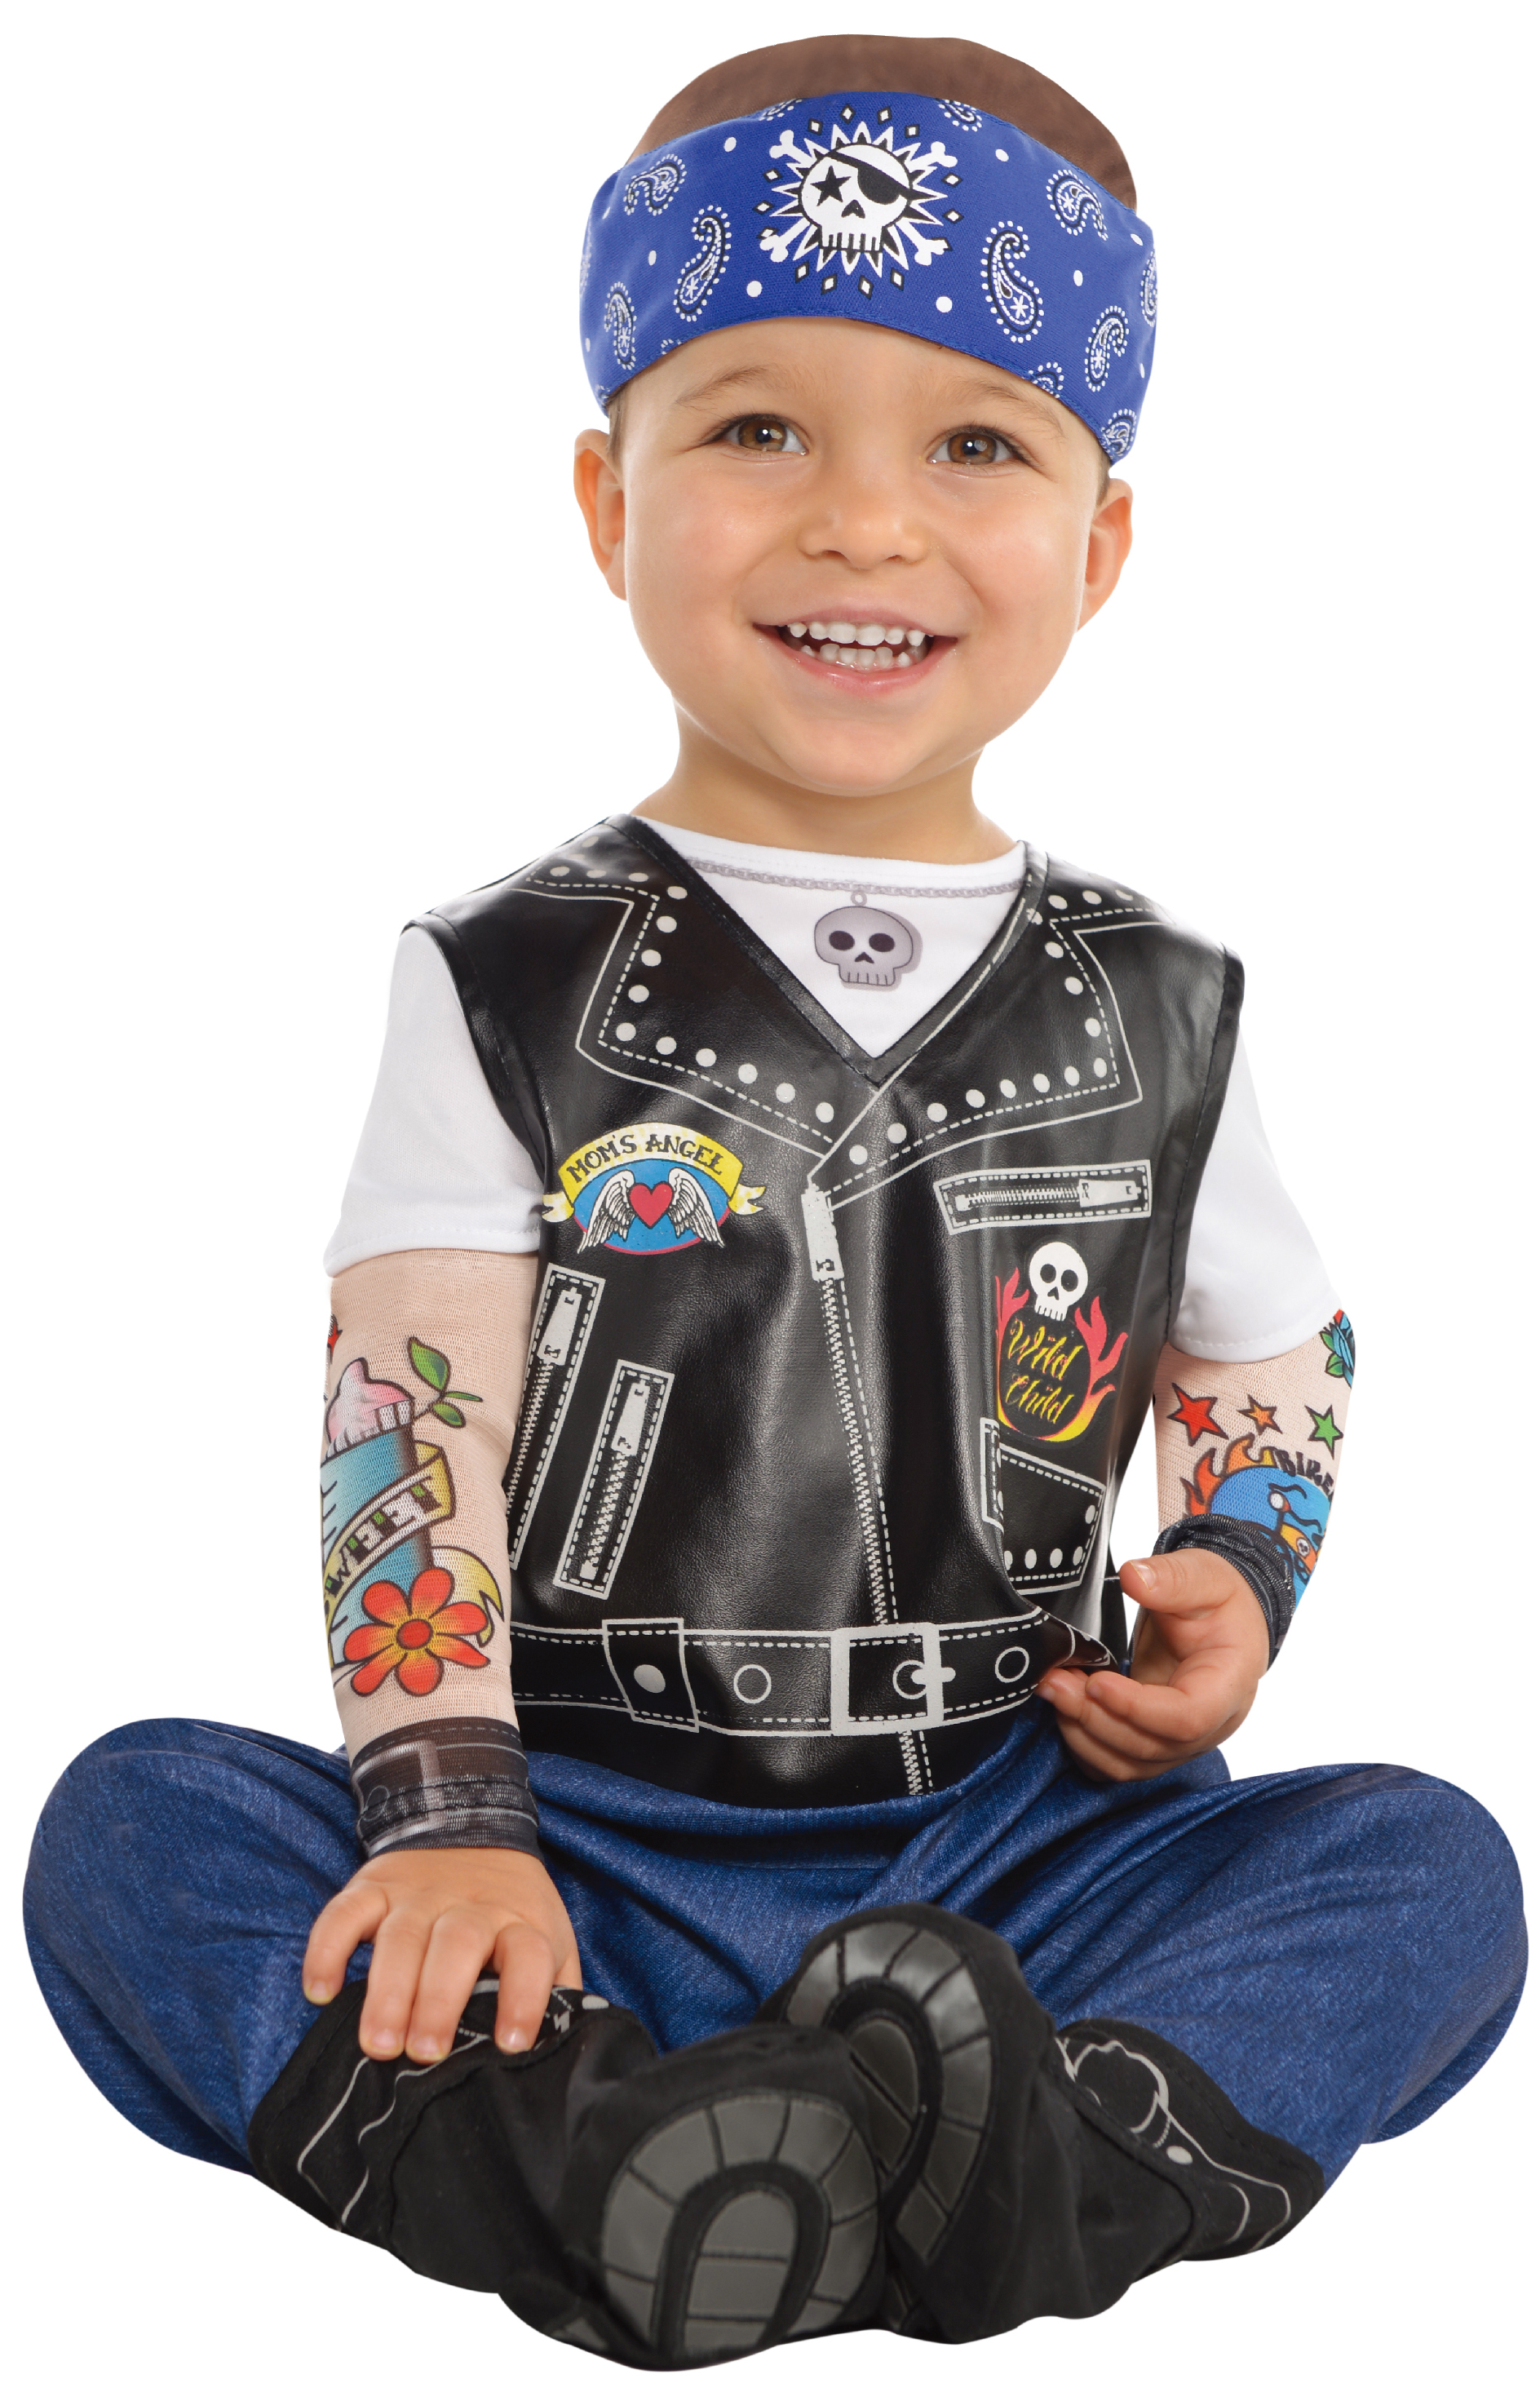 Sentinel Baby Biker Boys Fancy Dress Gangster Gang Punk Toddler Infant Costume Outfit New  sc 1 st  eBay : biker baby costume  - Germanpascual.Com